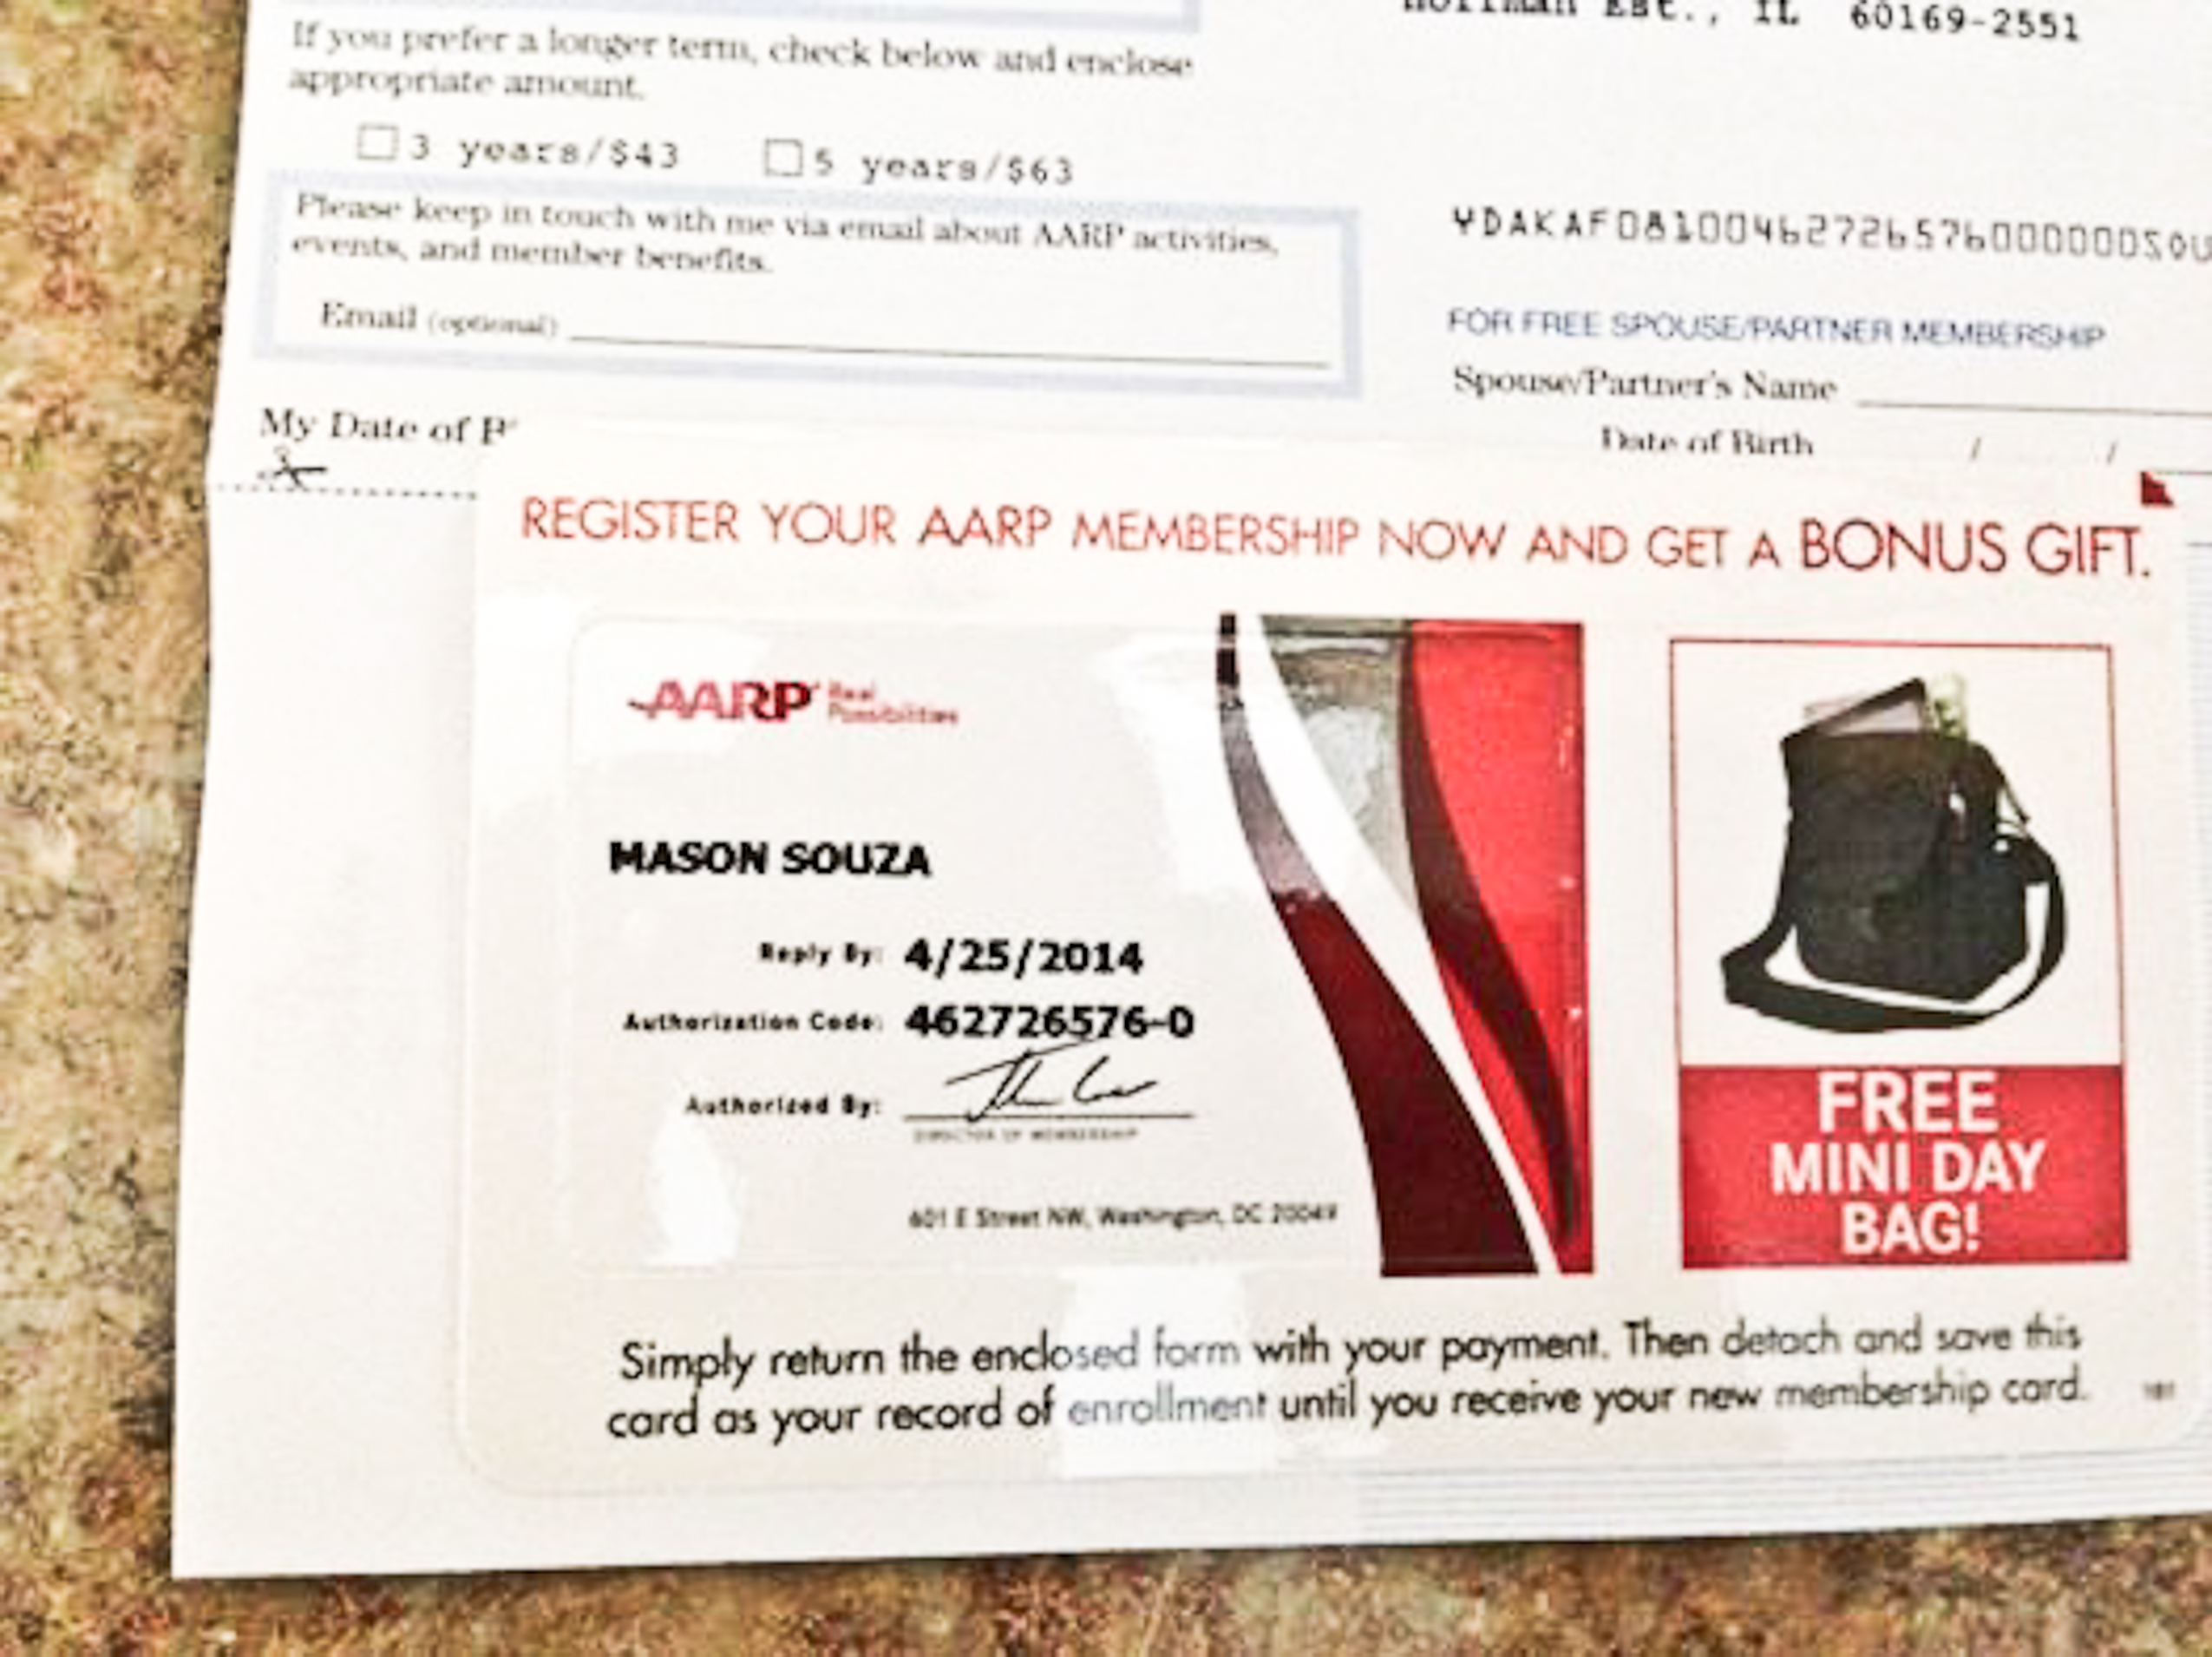 An AARP invitation 27 years early, but flattering still | My ...